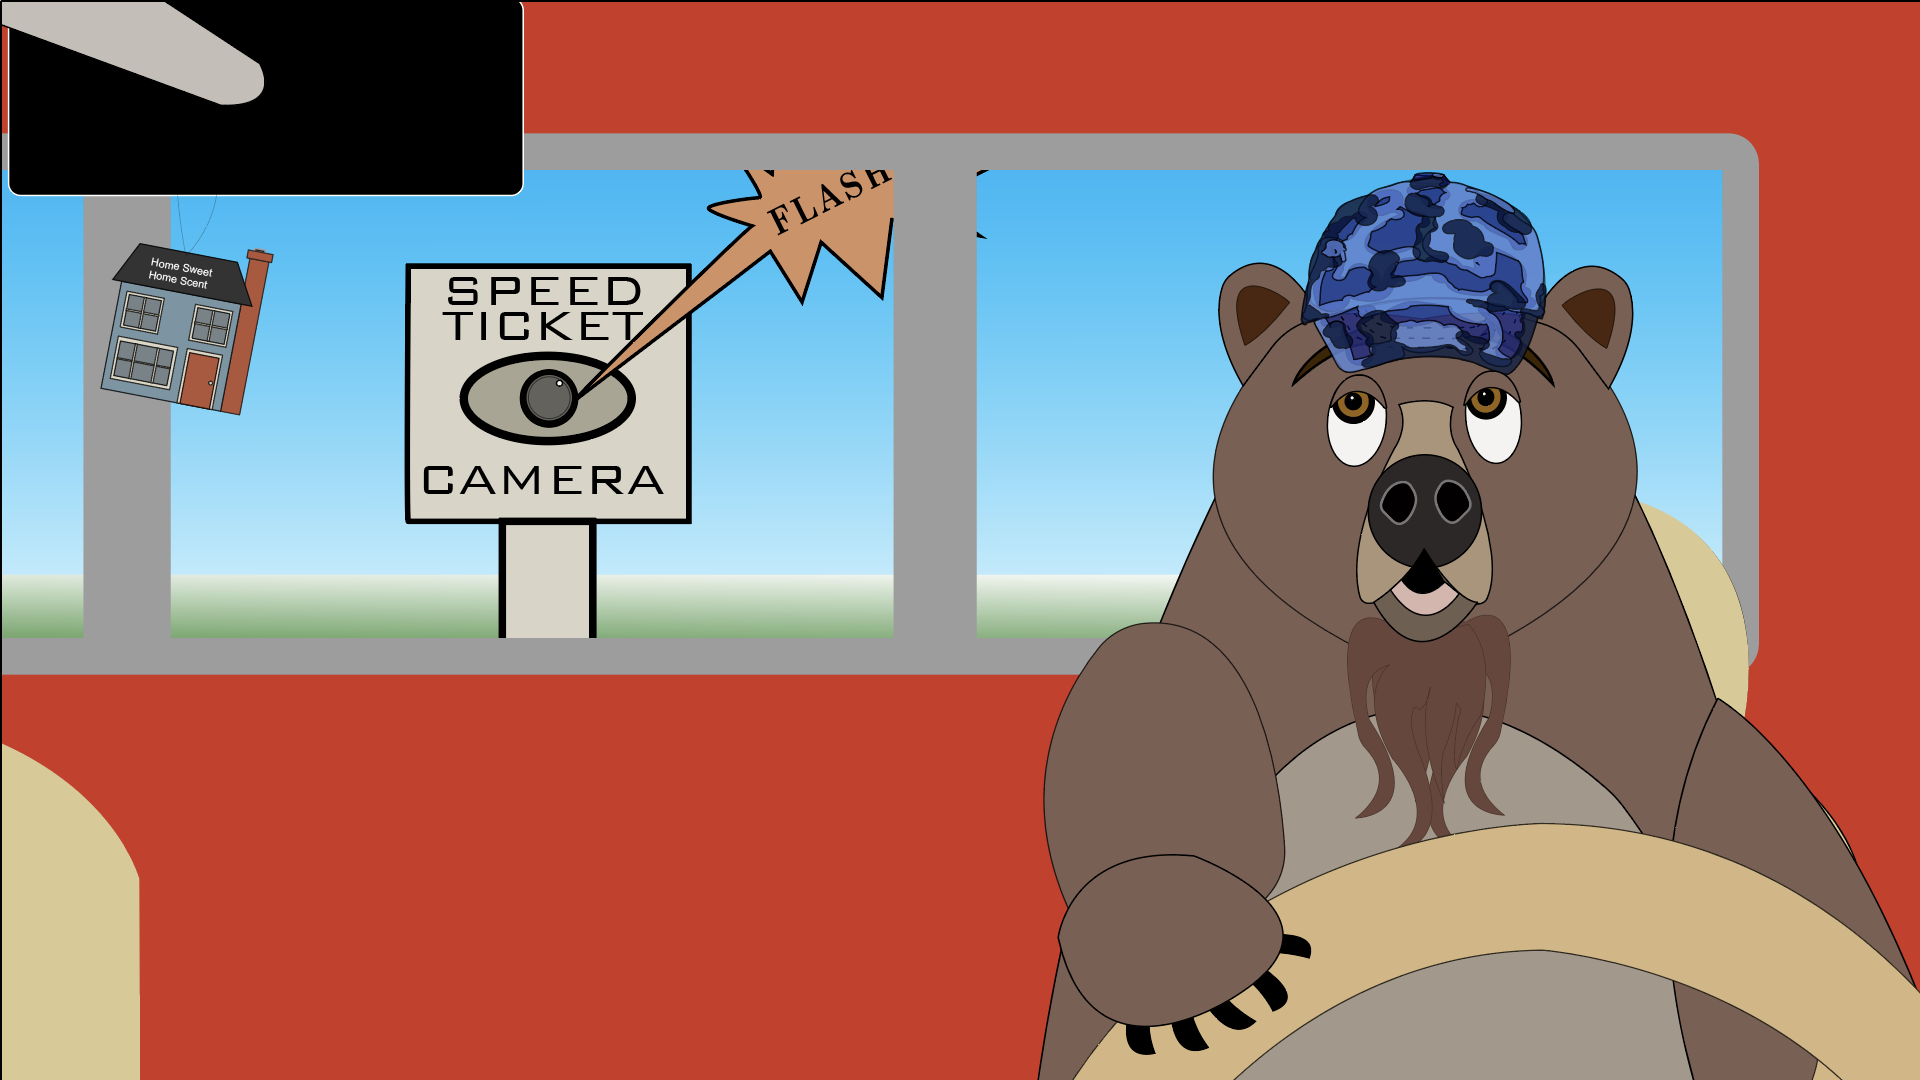 Still image from A Bear That Just Wants Solitude